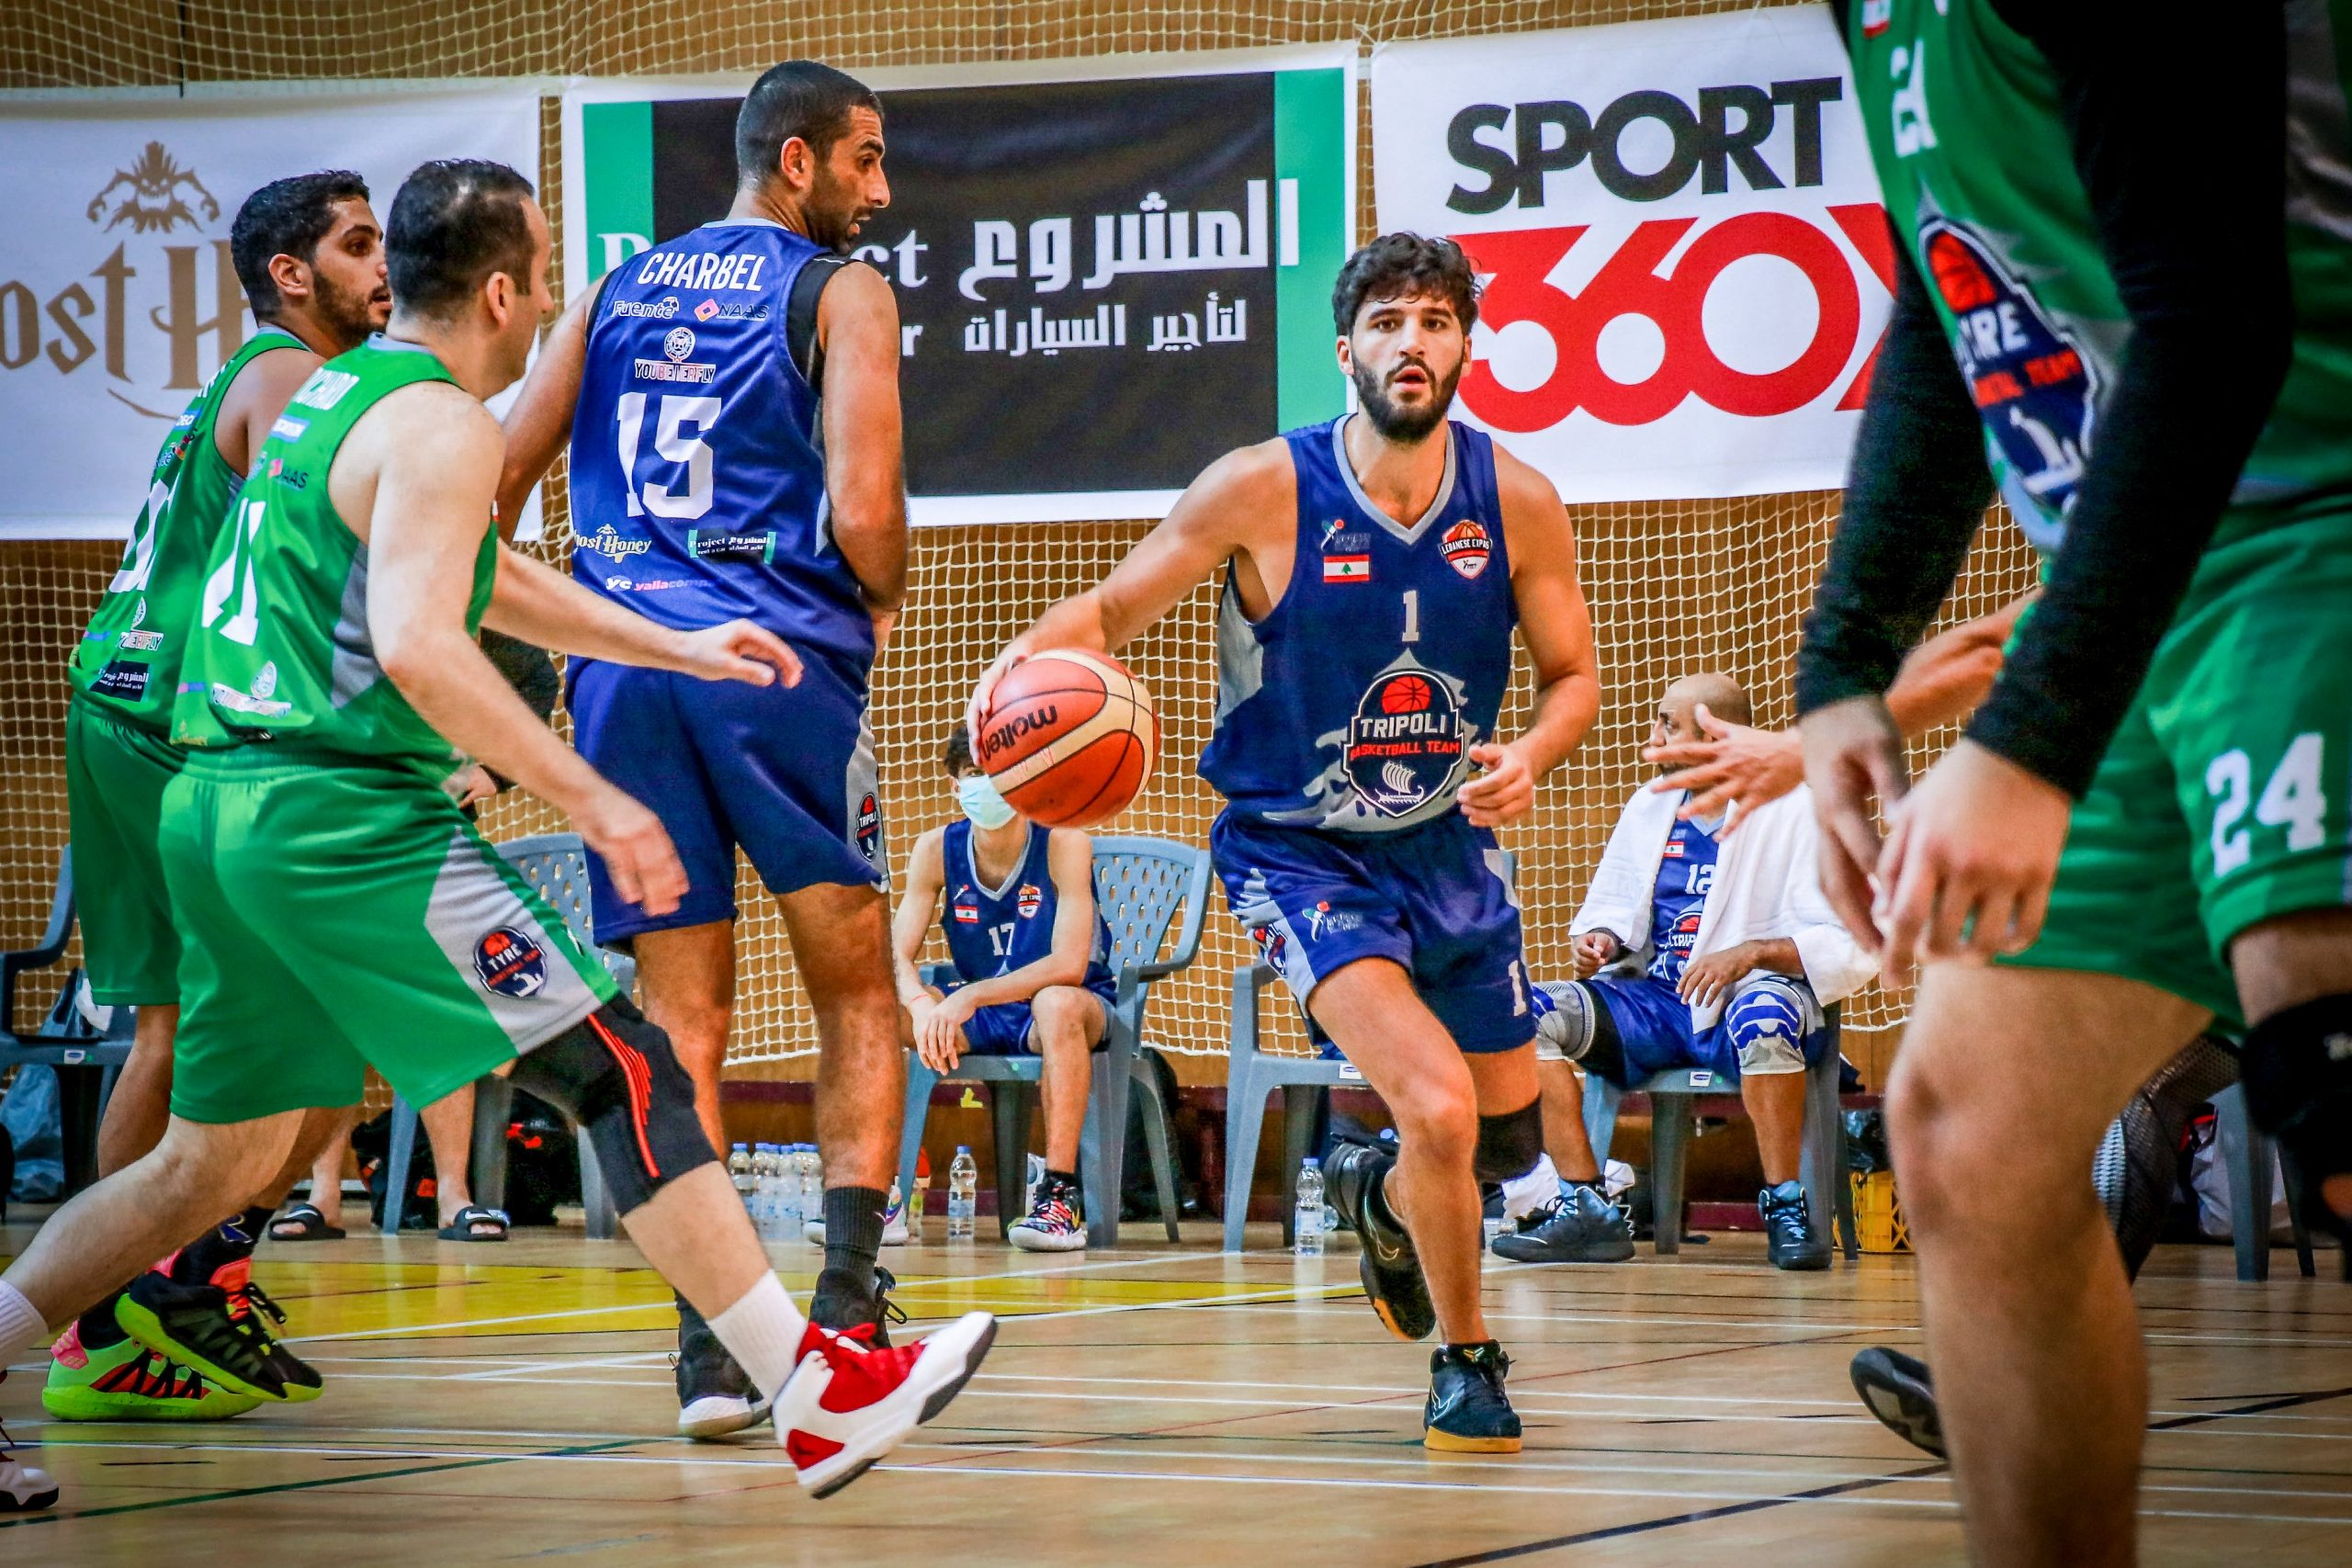 https://sport360.com/article/other/345762/results-from-opening-week-of-lebanese-expats-basketball-championship-fixtures